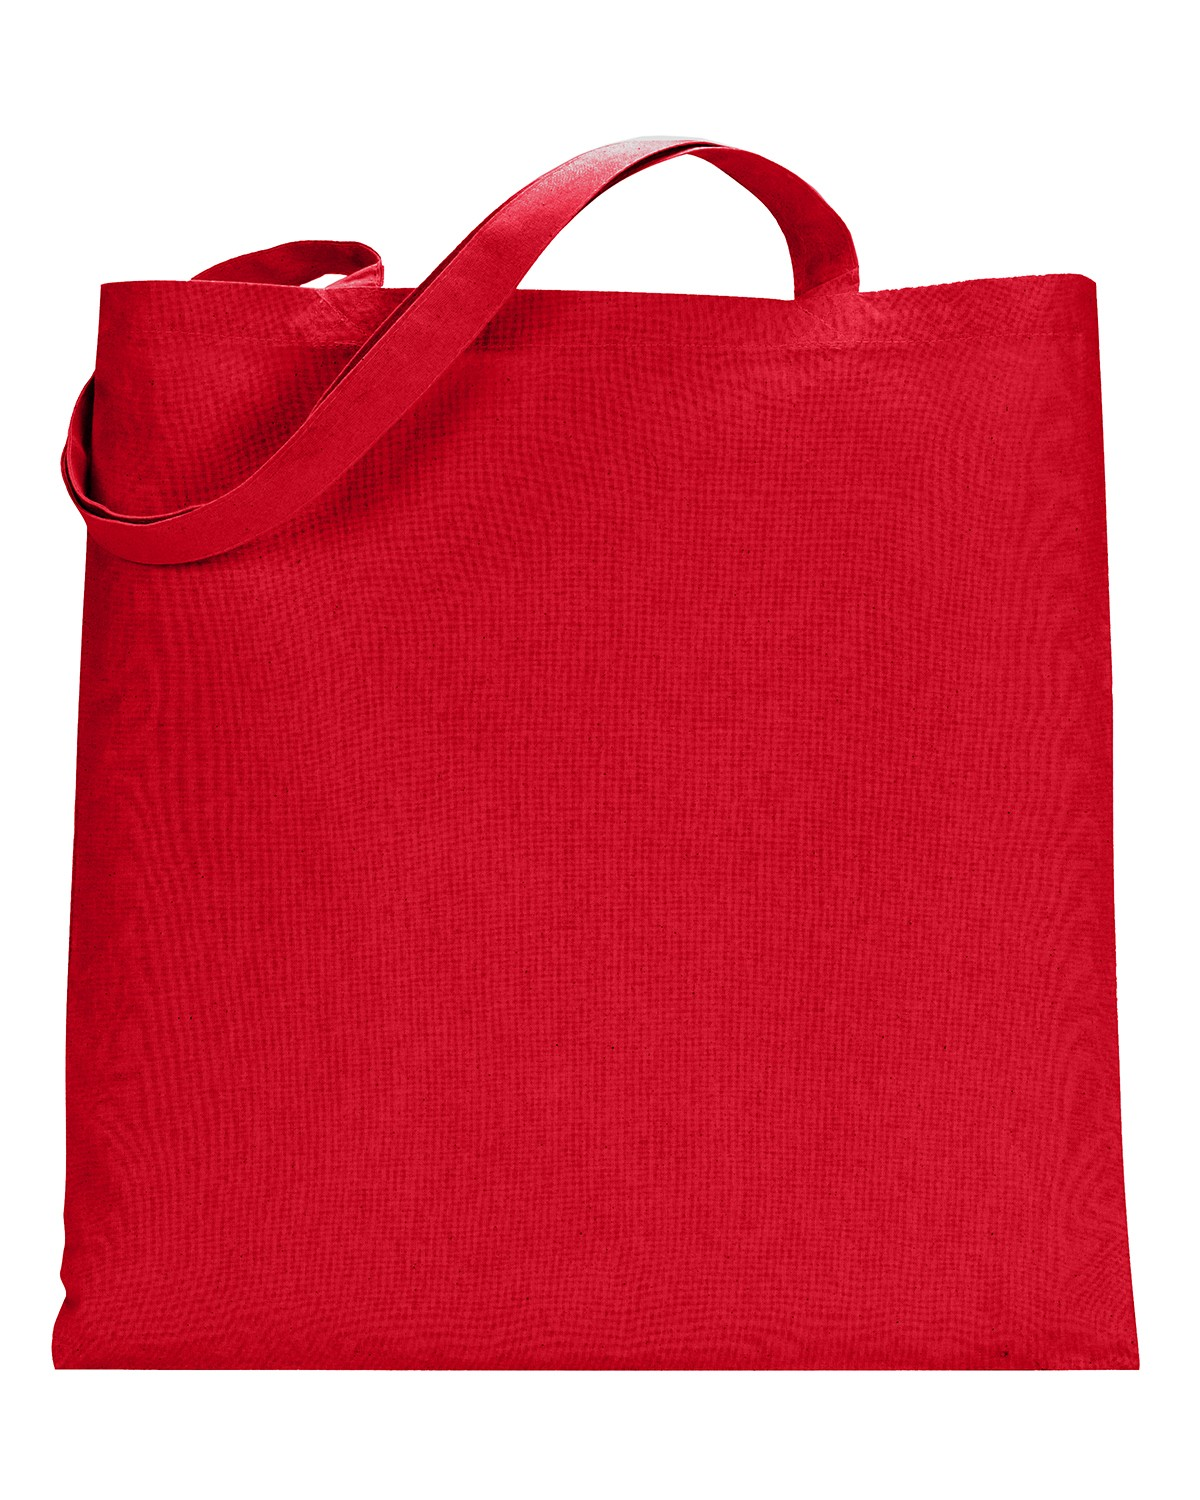 8860 Liberty Bags RED